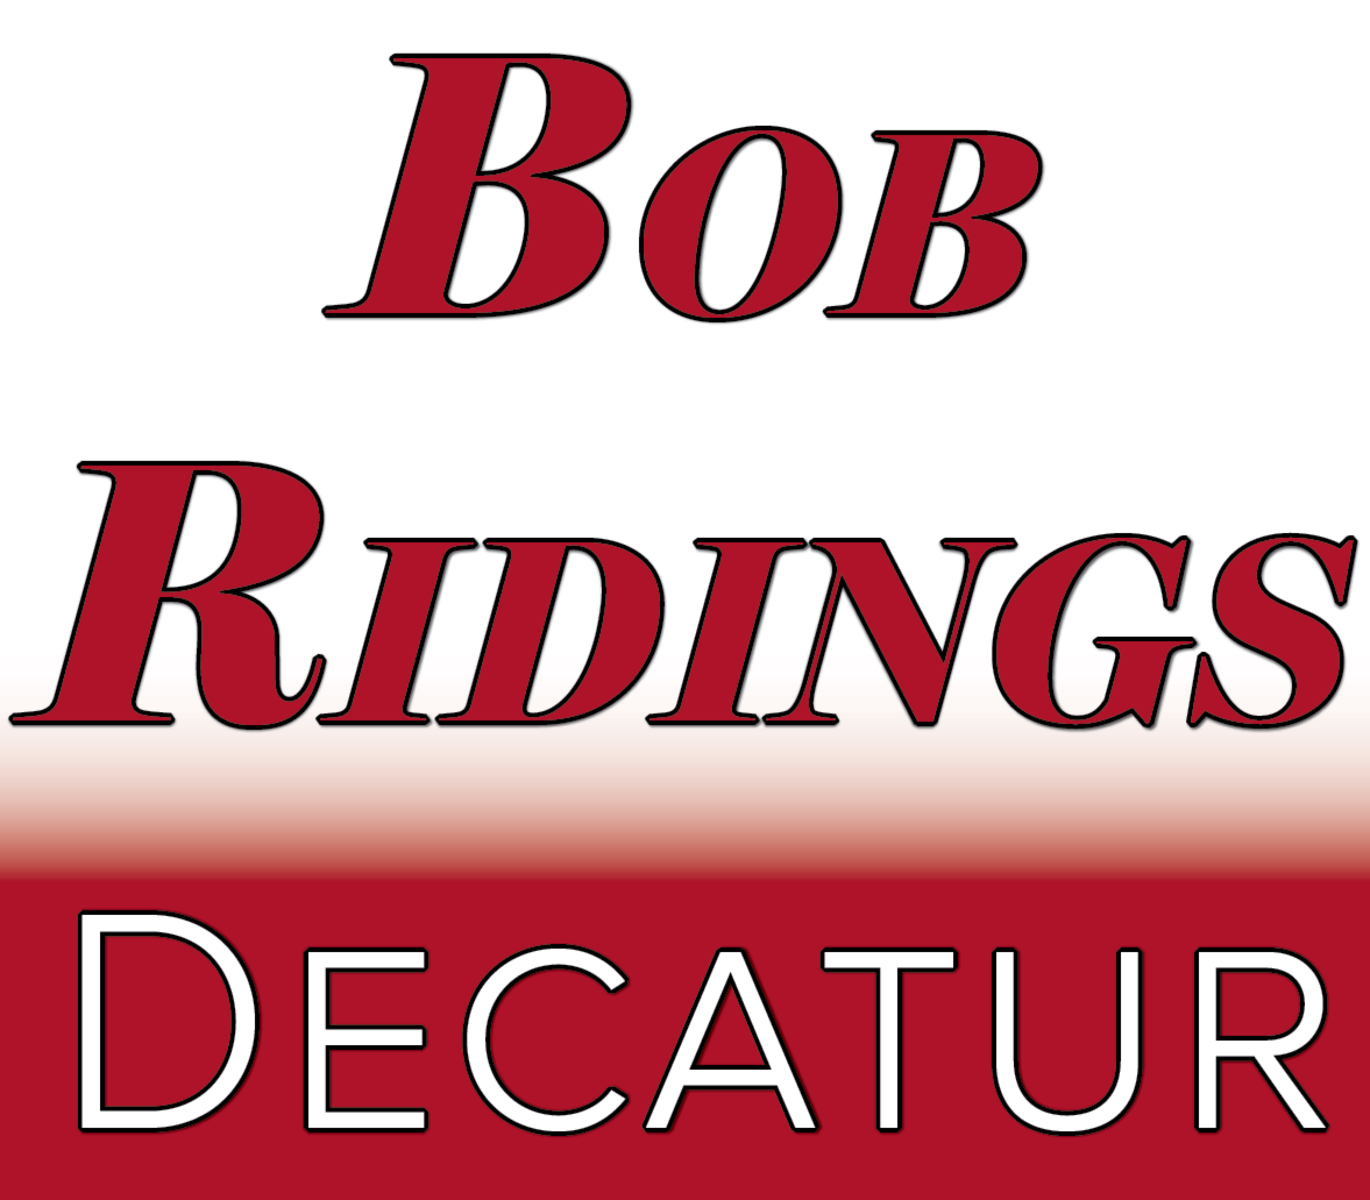 Bob Ridings Decatur Il >> Bob Ridings Decatur Decatur Il Read Consumer Reviews Browse